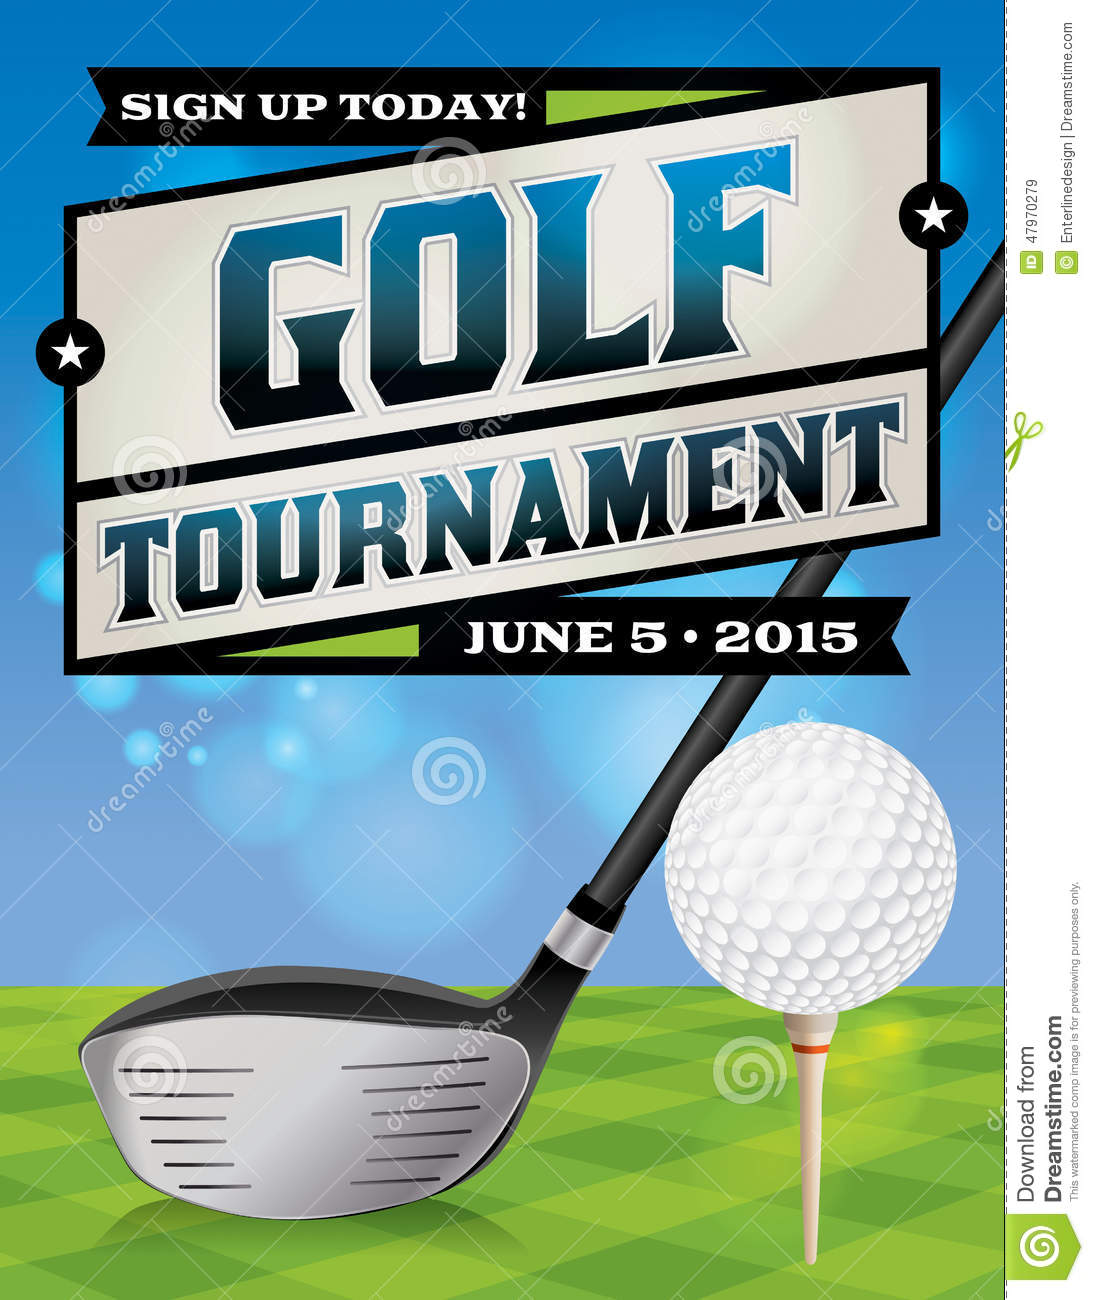 golf tournament flyer illustration stock vector image 47970279. Black Bedroom Furniture Sets. Home Design Ideas